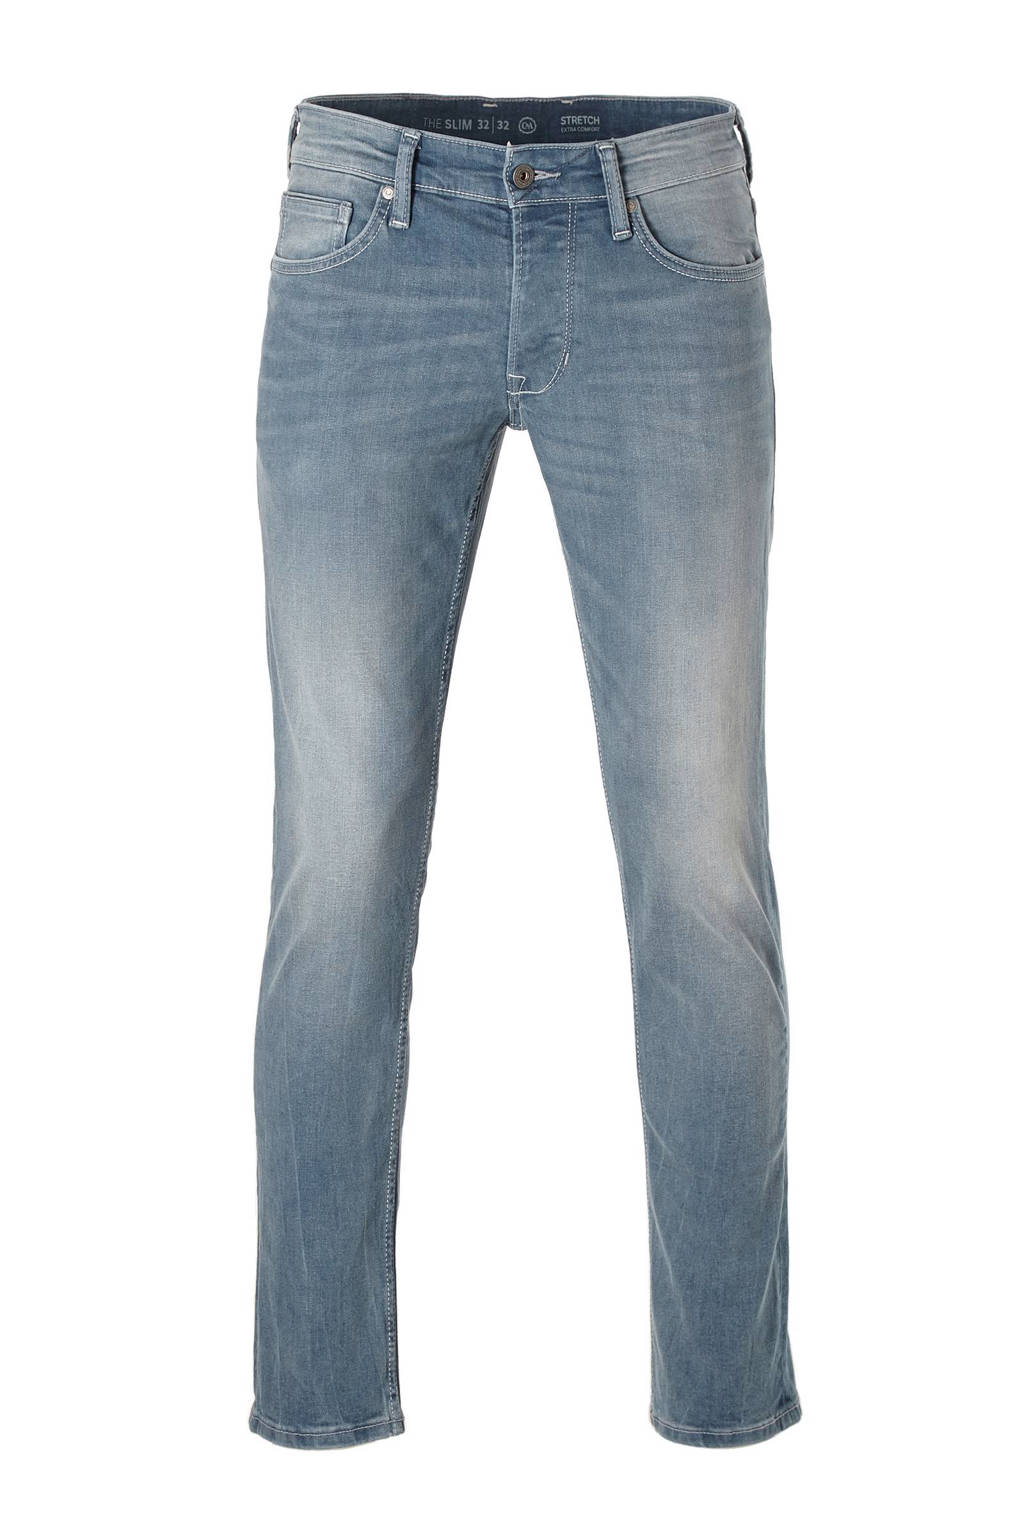 C&A The Denim slim fit jeans, Grijsblauw